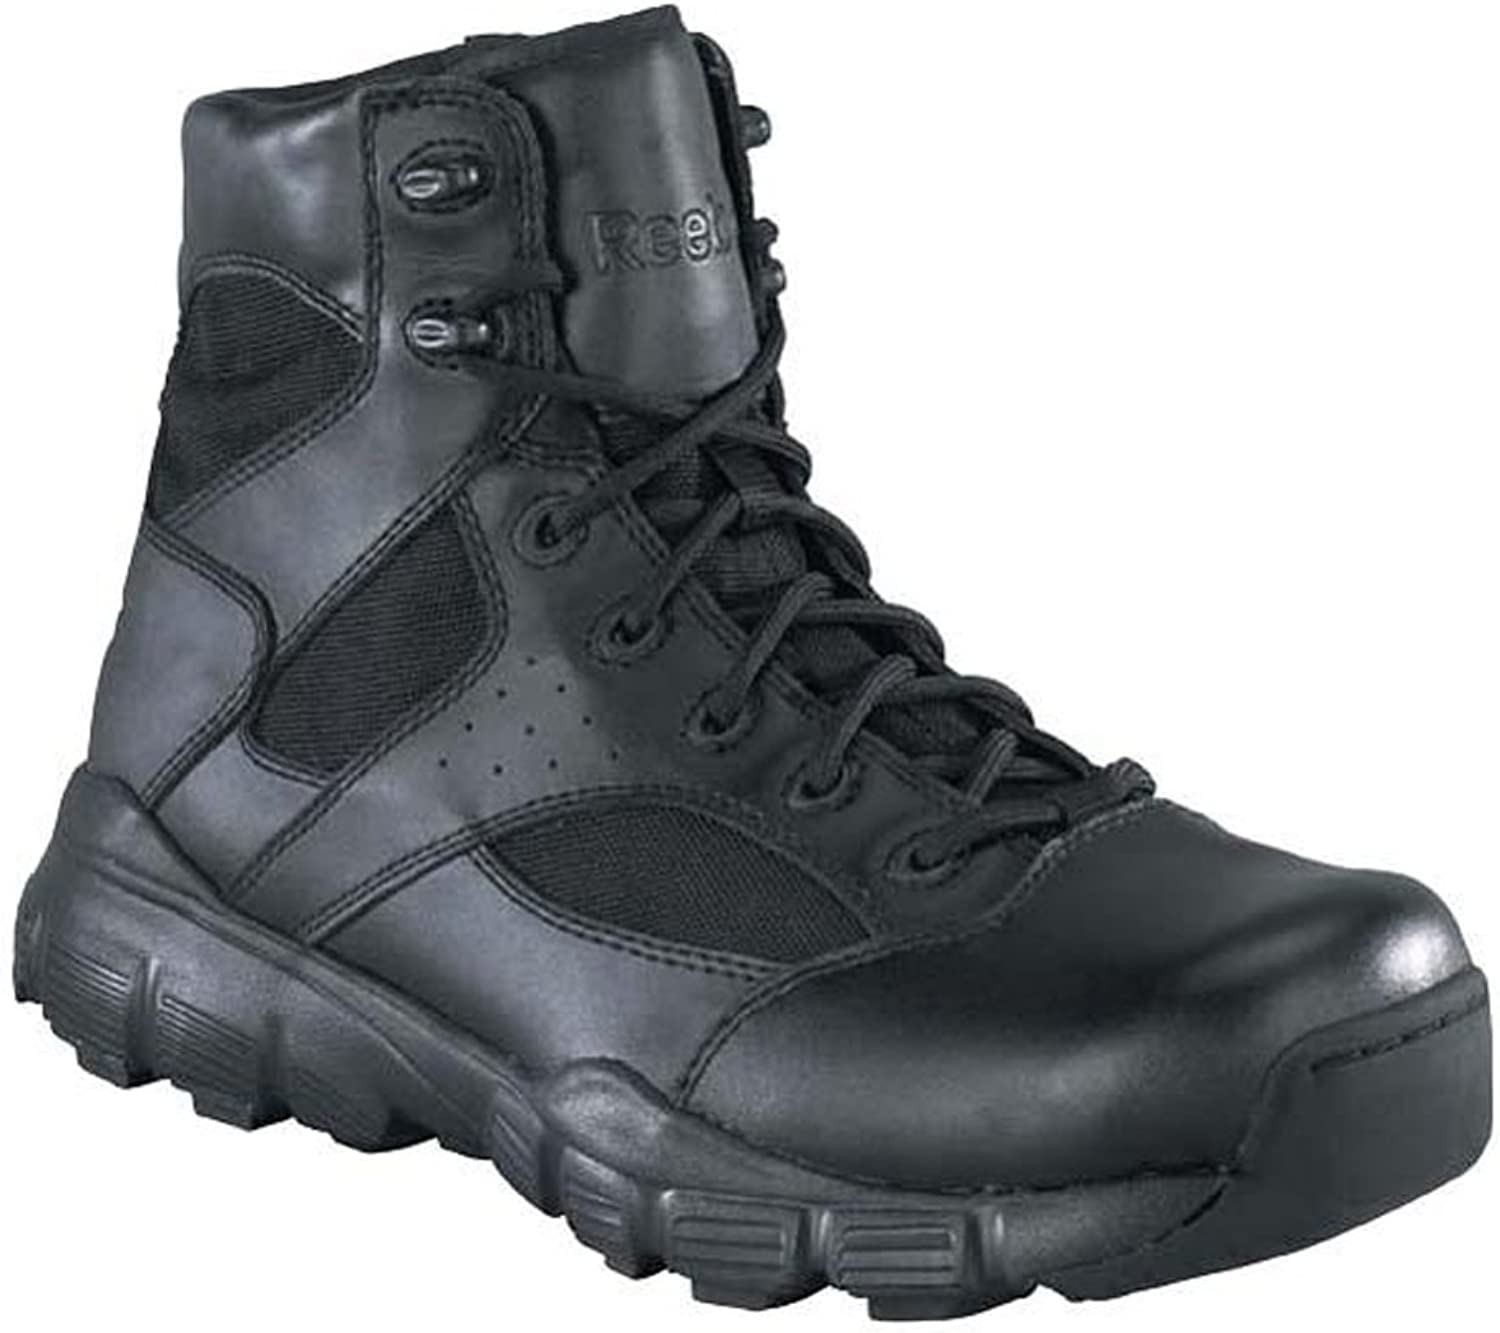 Reebok Mens Black Leather Nylon 6in Tactical Boots Dauntless Soft Toe